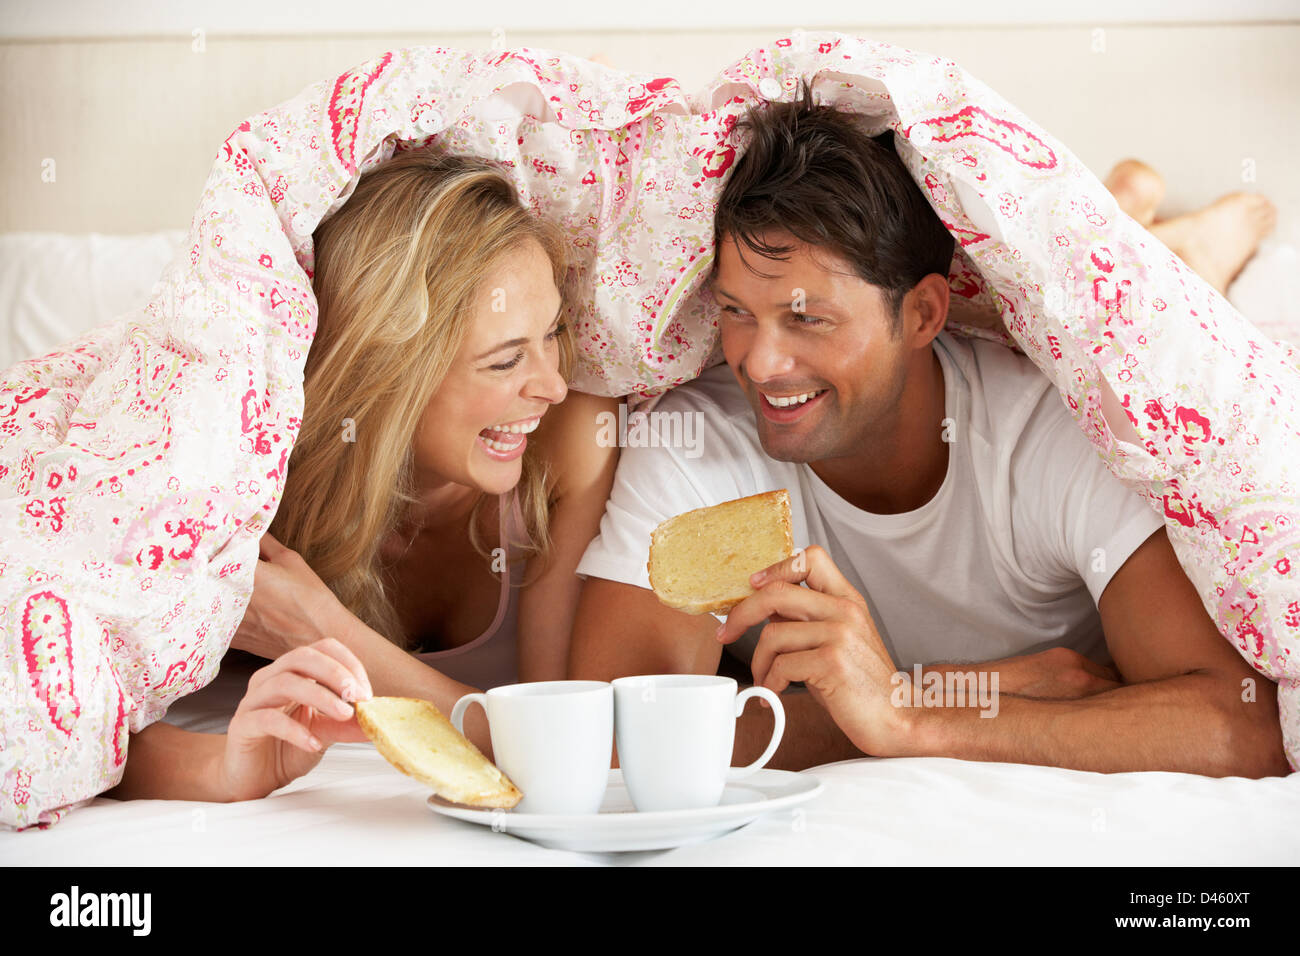 Couple Snuggled Under Duvet Eating Breakfast - Stock Image